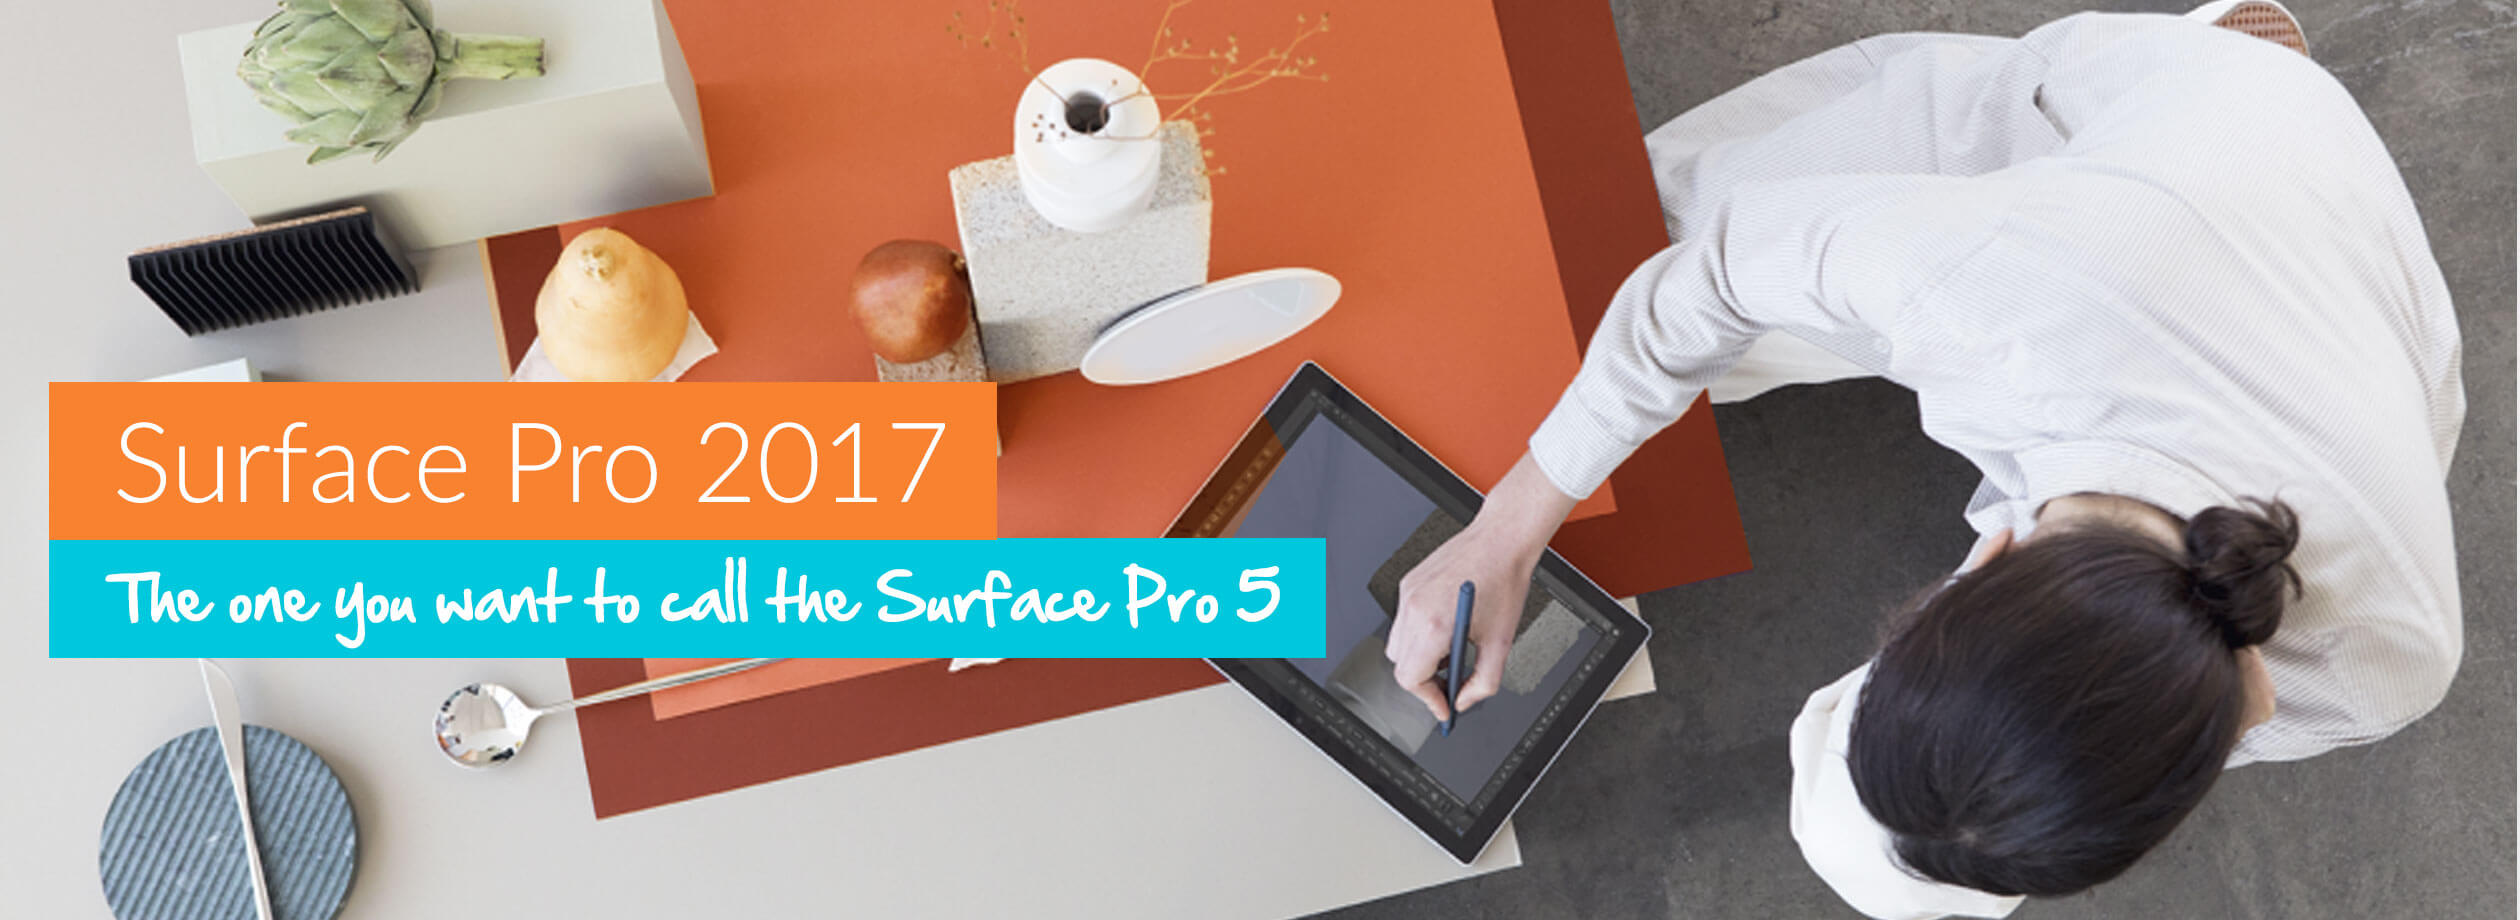 Surface Pro 2017 - The one you want to call Surface Pro 5